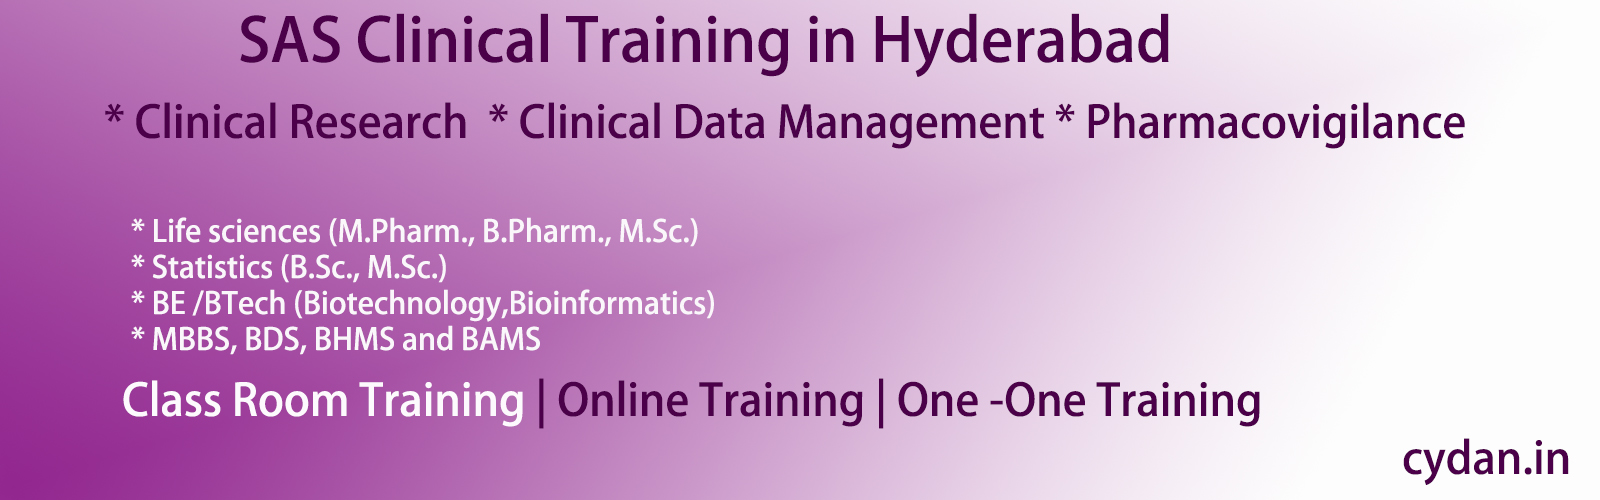 clinical sas training in hyderabad